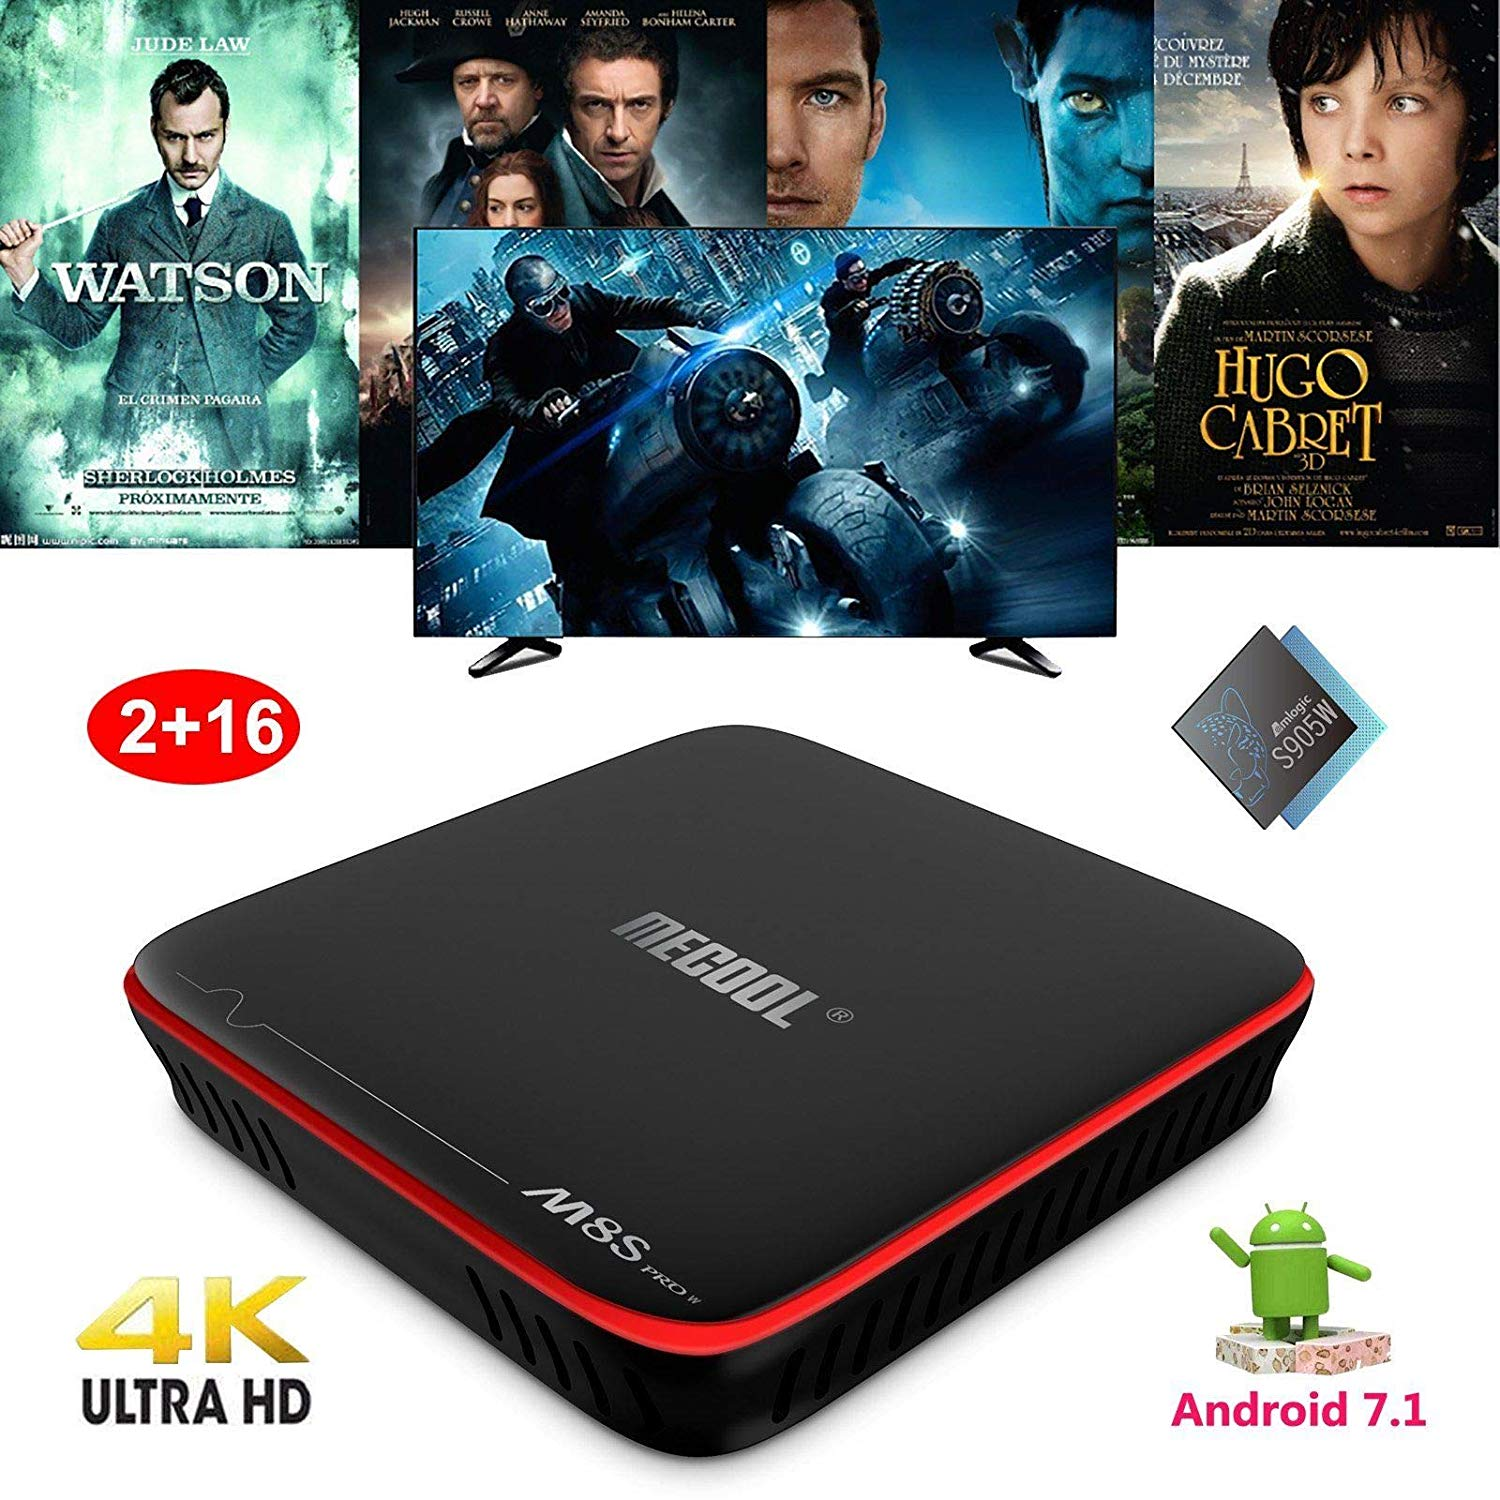 Mocei 2018 Android 7.1 Amlogic S905W Quad Core 2+16GB 4K Smart TV Box 3D Sports Movies